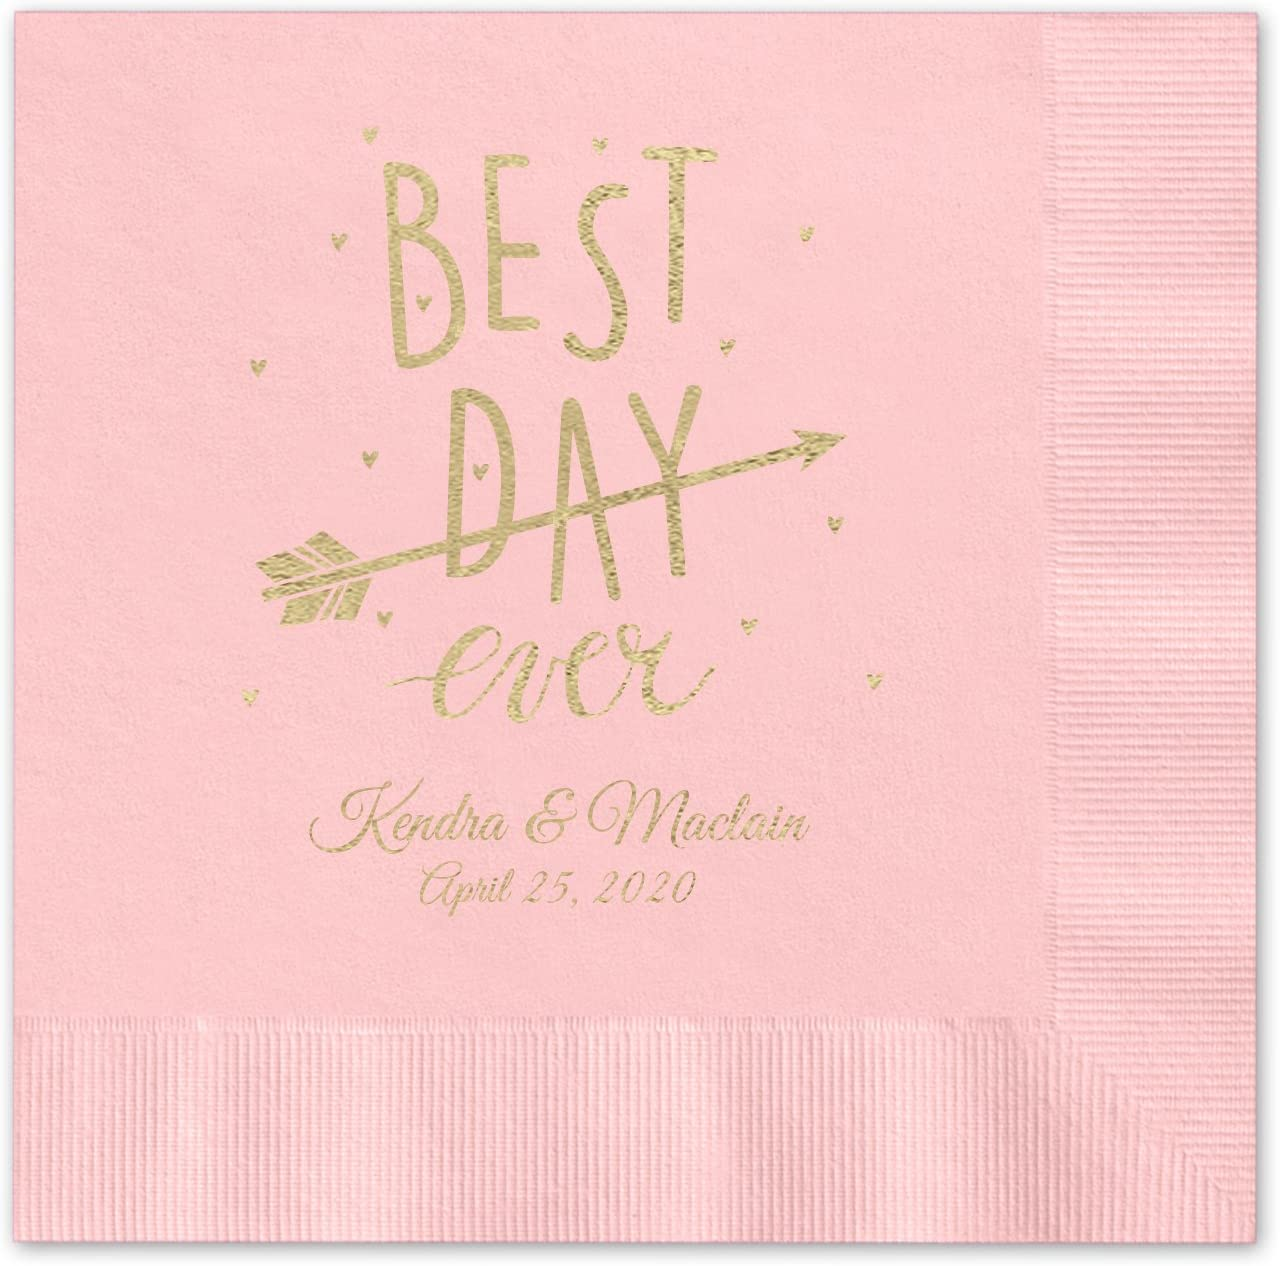 Best Day Ever Animer and price revision Arrow Personalized - Beverage supreme 100 Cocktail Napkins